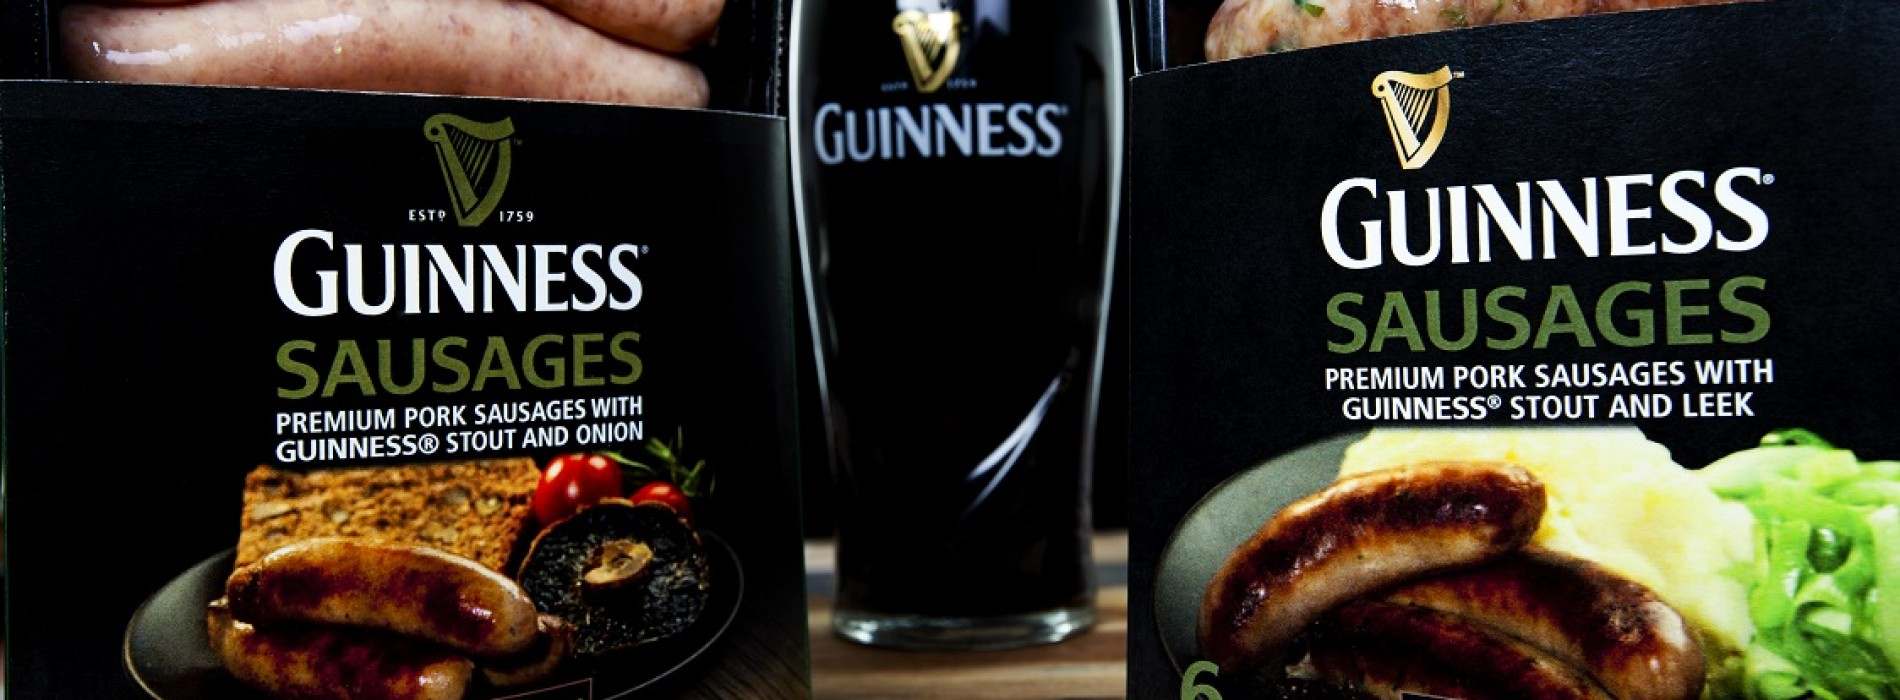 Move Over Black Pudding, There's a New Irish Sausage in Town